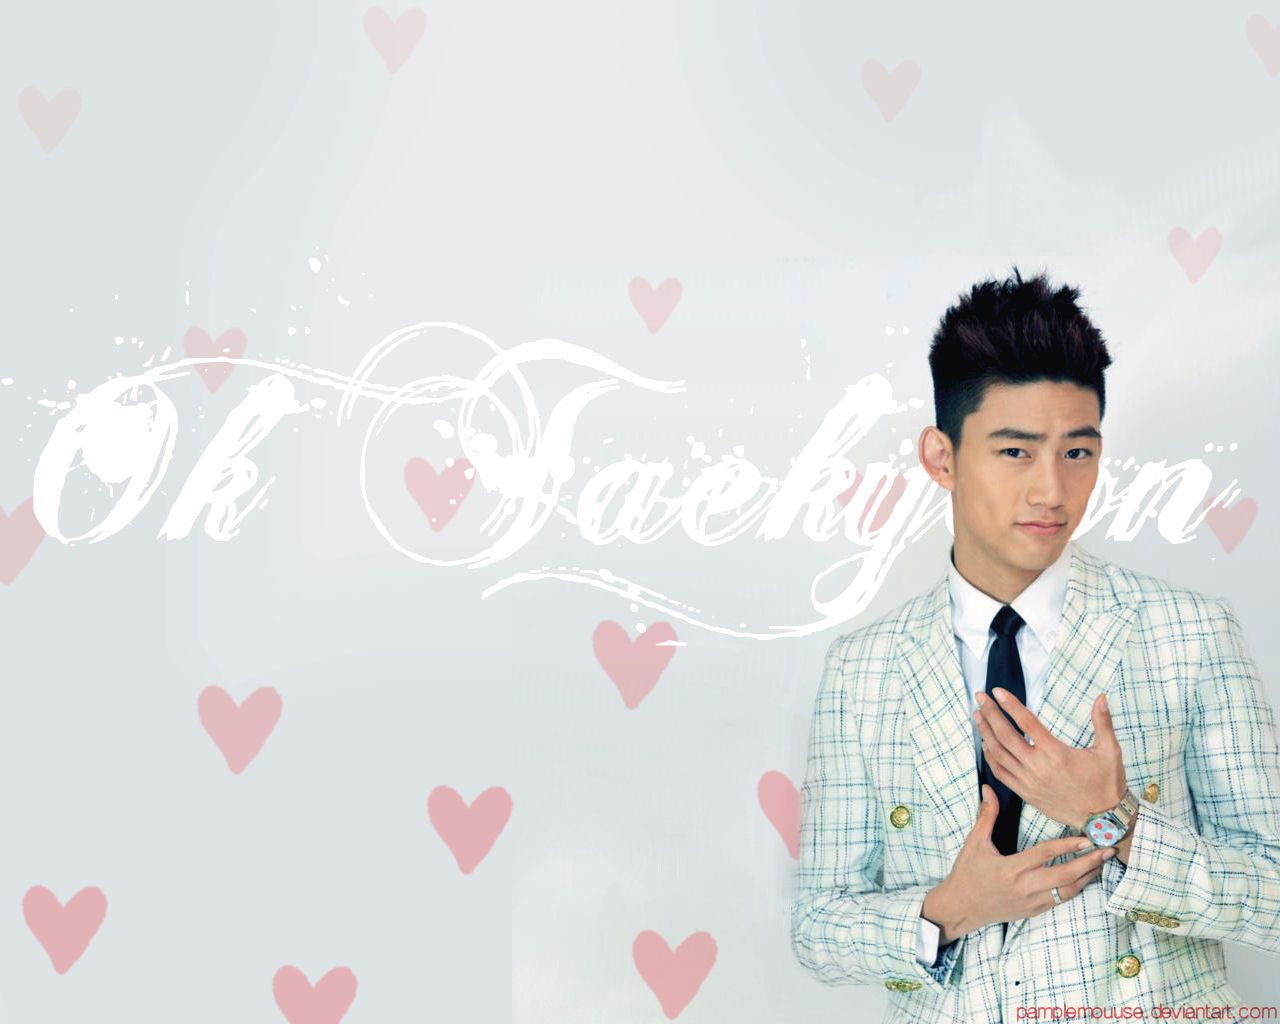 Taecyeon   taecyeon 2pm Wallpaper 34432639 1280x1024